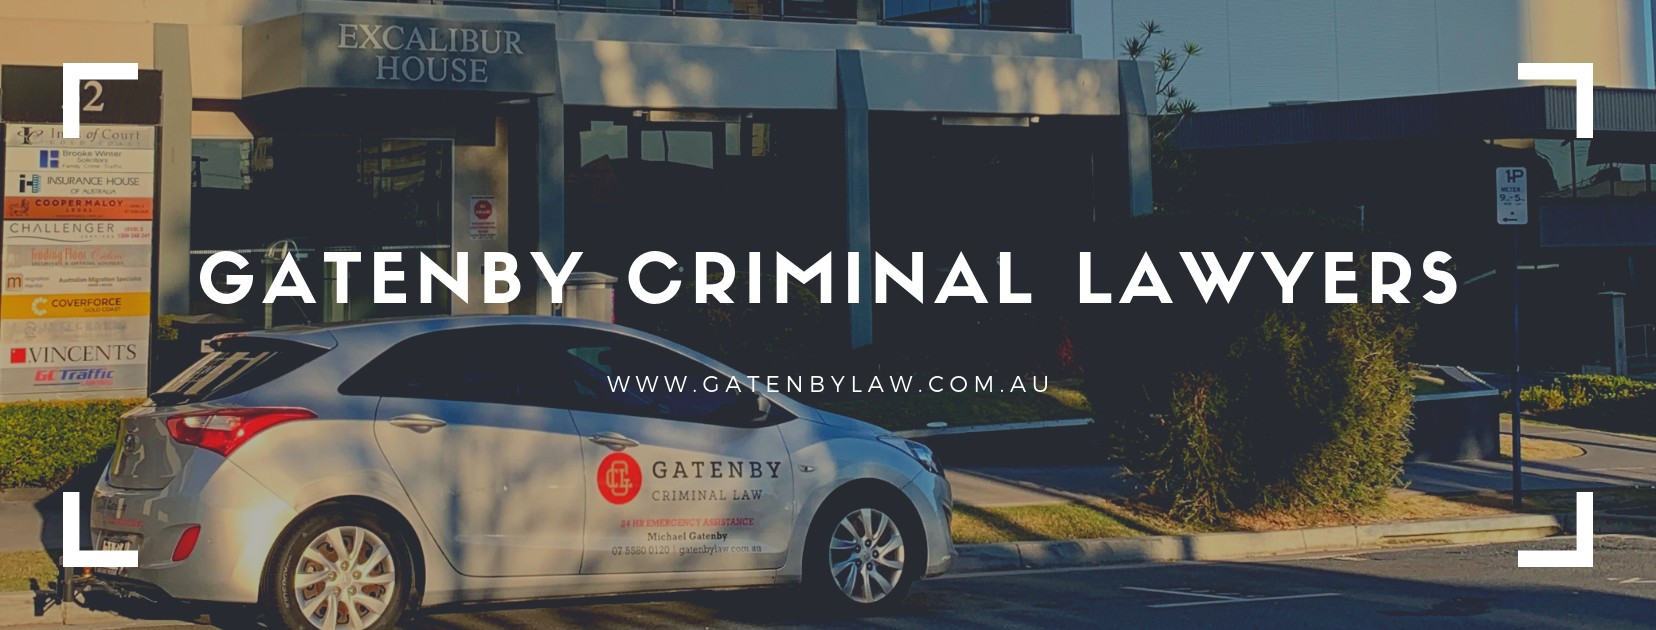 Gatenby Criminal Law Mission Statement, Employees and Hiring | LinkedIn